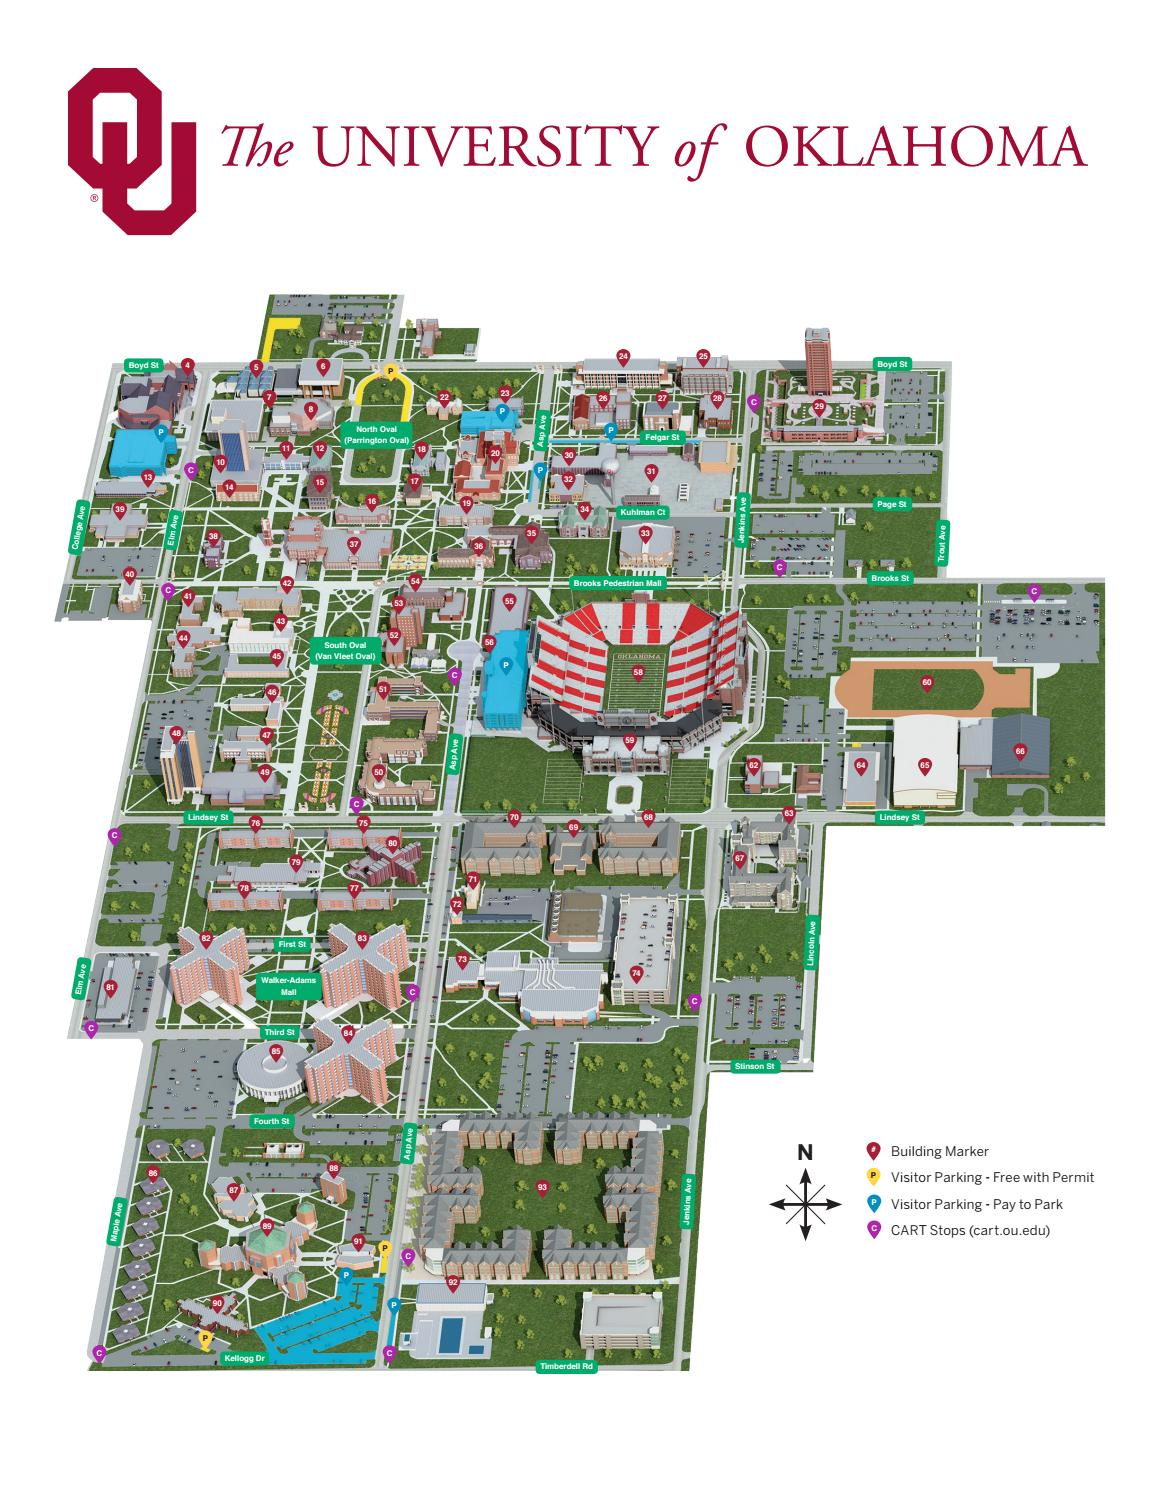 University Of Oklahoma Map 2018 Campus Map   Main by The University of Oklahoma   issuu